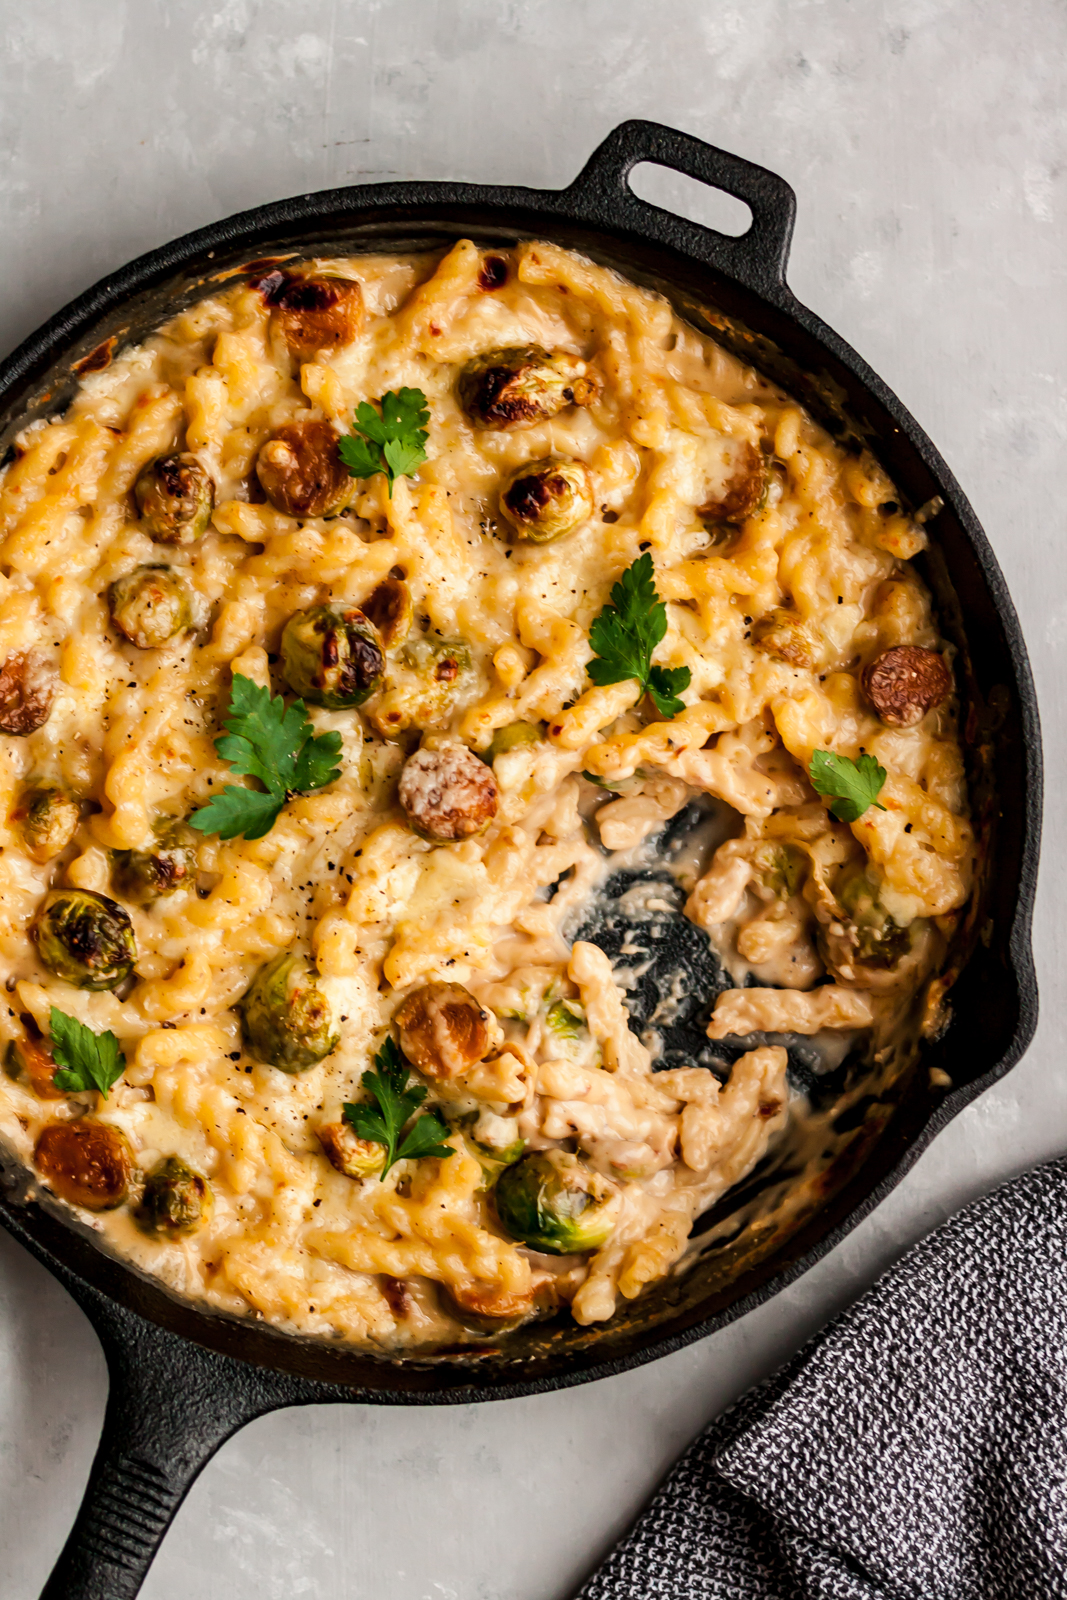 mac and cheese with brussels sprouts in a skillet